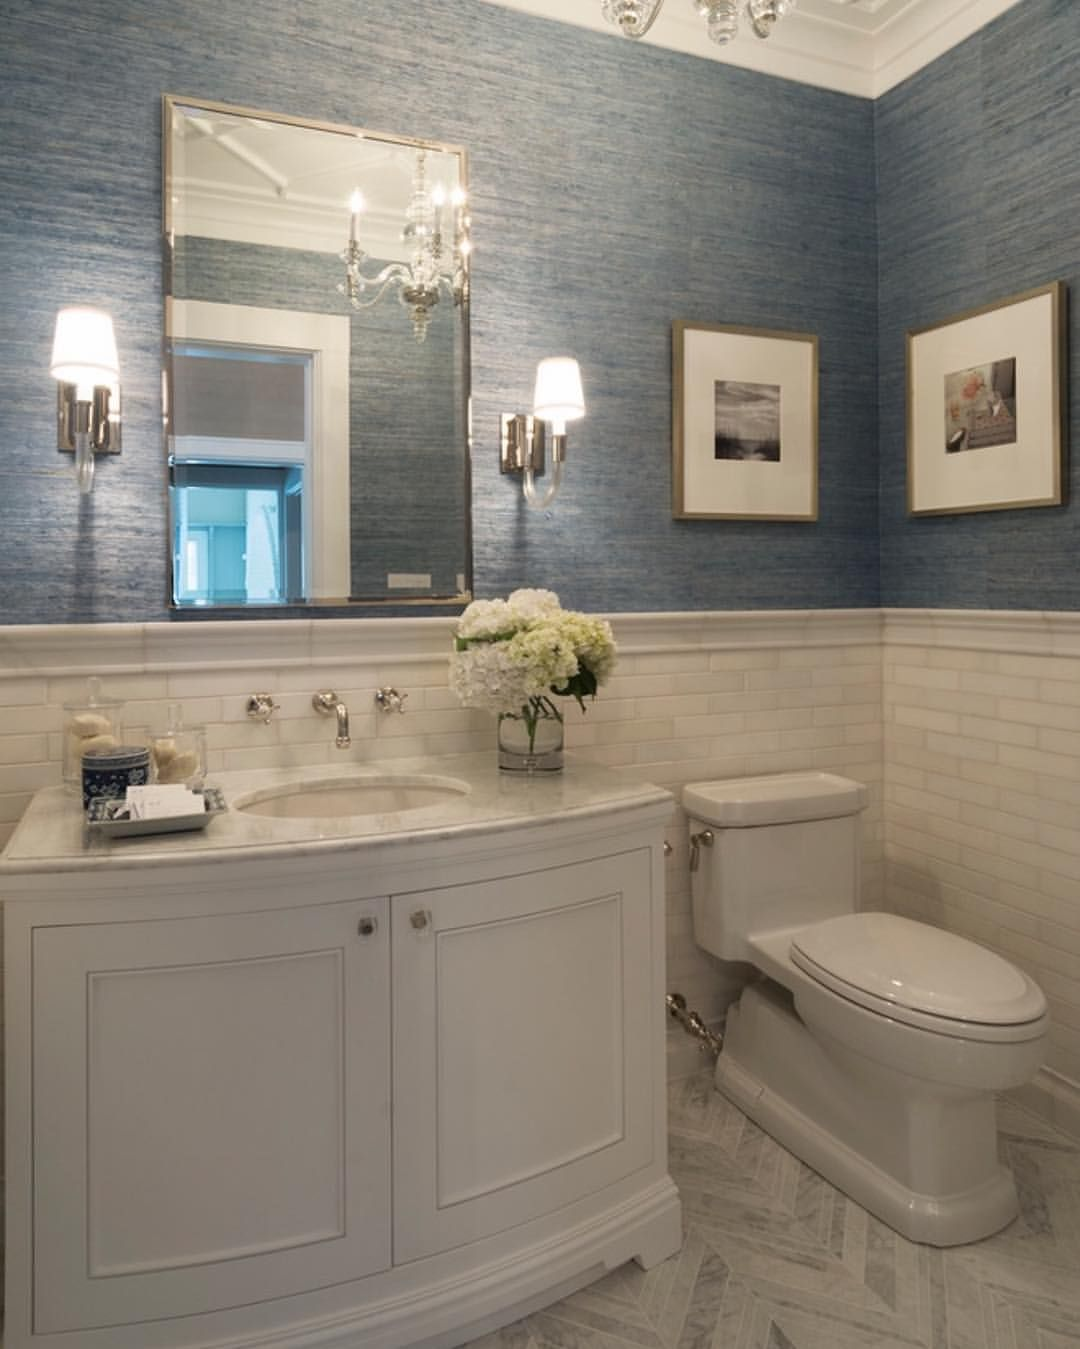 Gray Powder Room With Grey Grasscloth: Powder Room Grasscloth